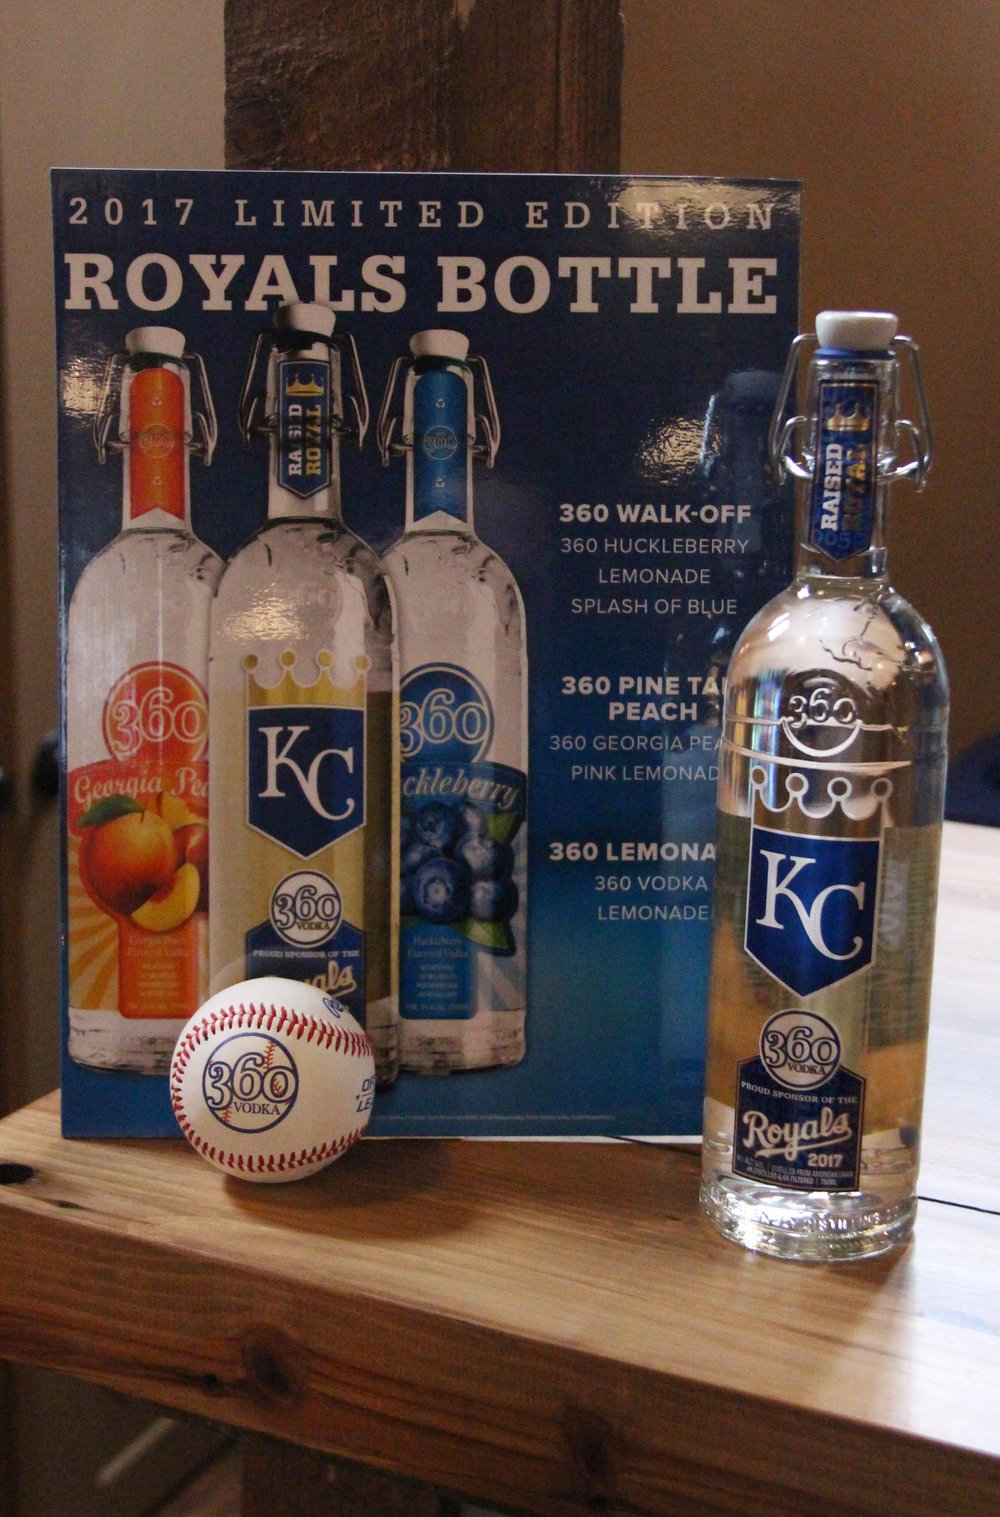 ROSS MARTIN/Citizen photo One of the new 360 Vodka 2017 commemorative Royals bottles on display Tuesday, March 14 at McCormick Distilling company in Weston, Mo.